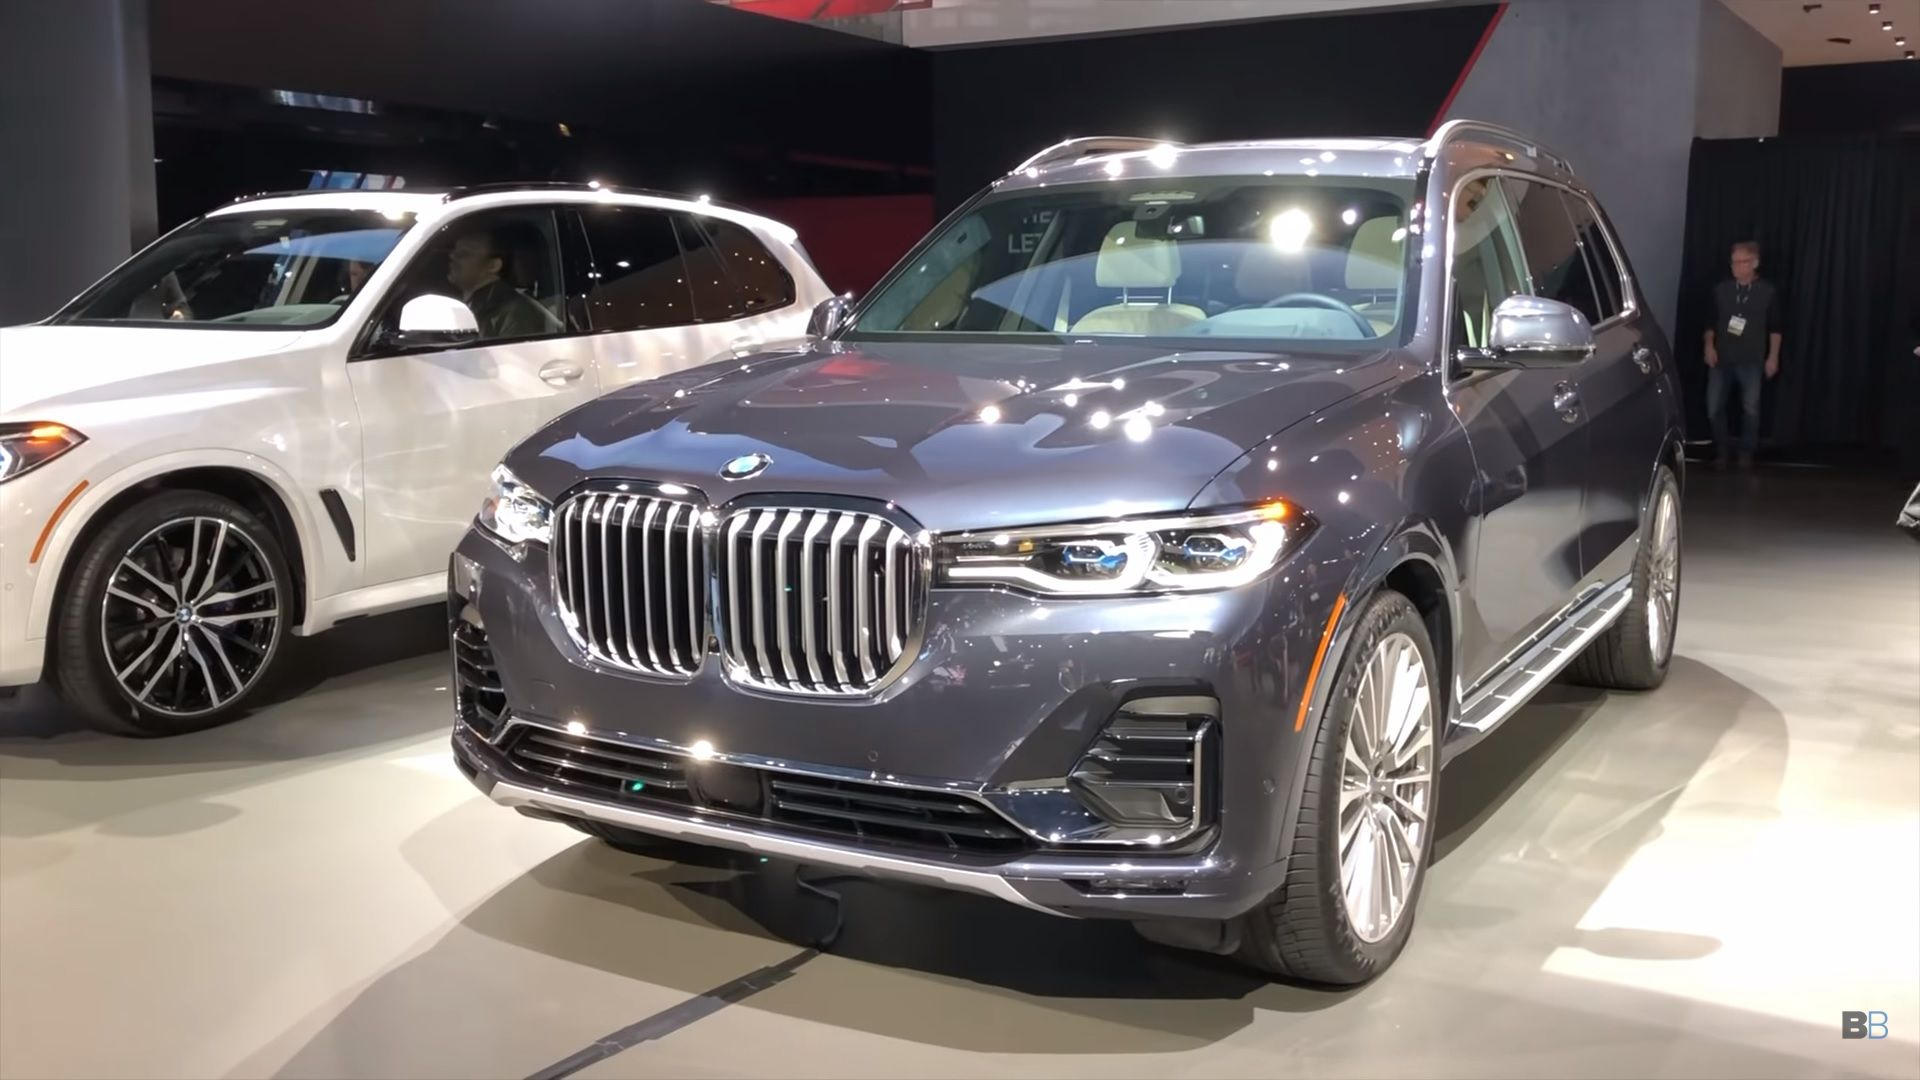 Check Out This Nice Demo Of The 2019 Bmw X7 S Third Row Seating Top Speed Bmw X7 Bmw Suv Cars